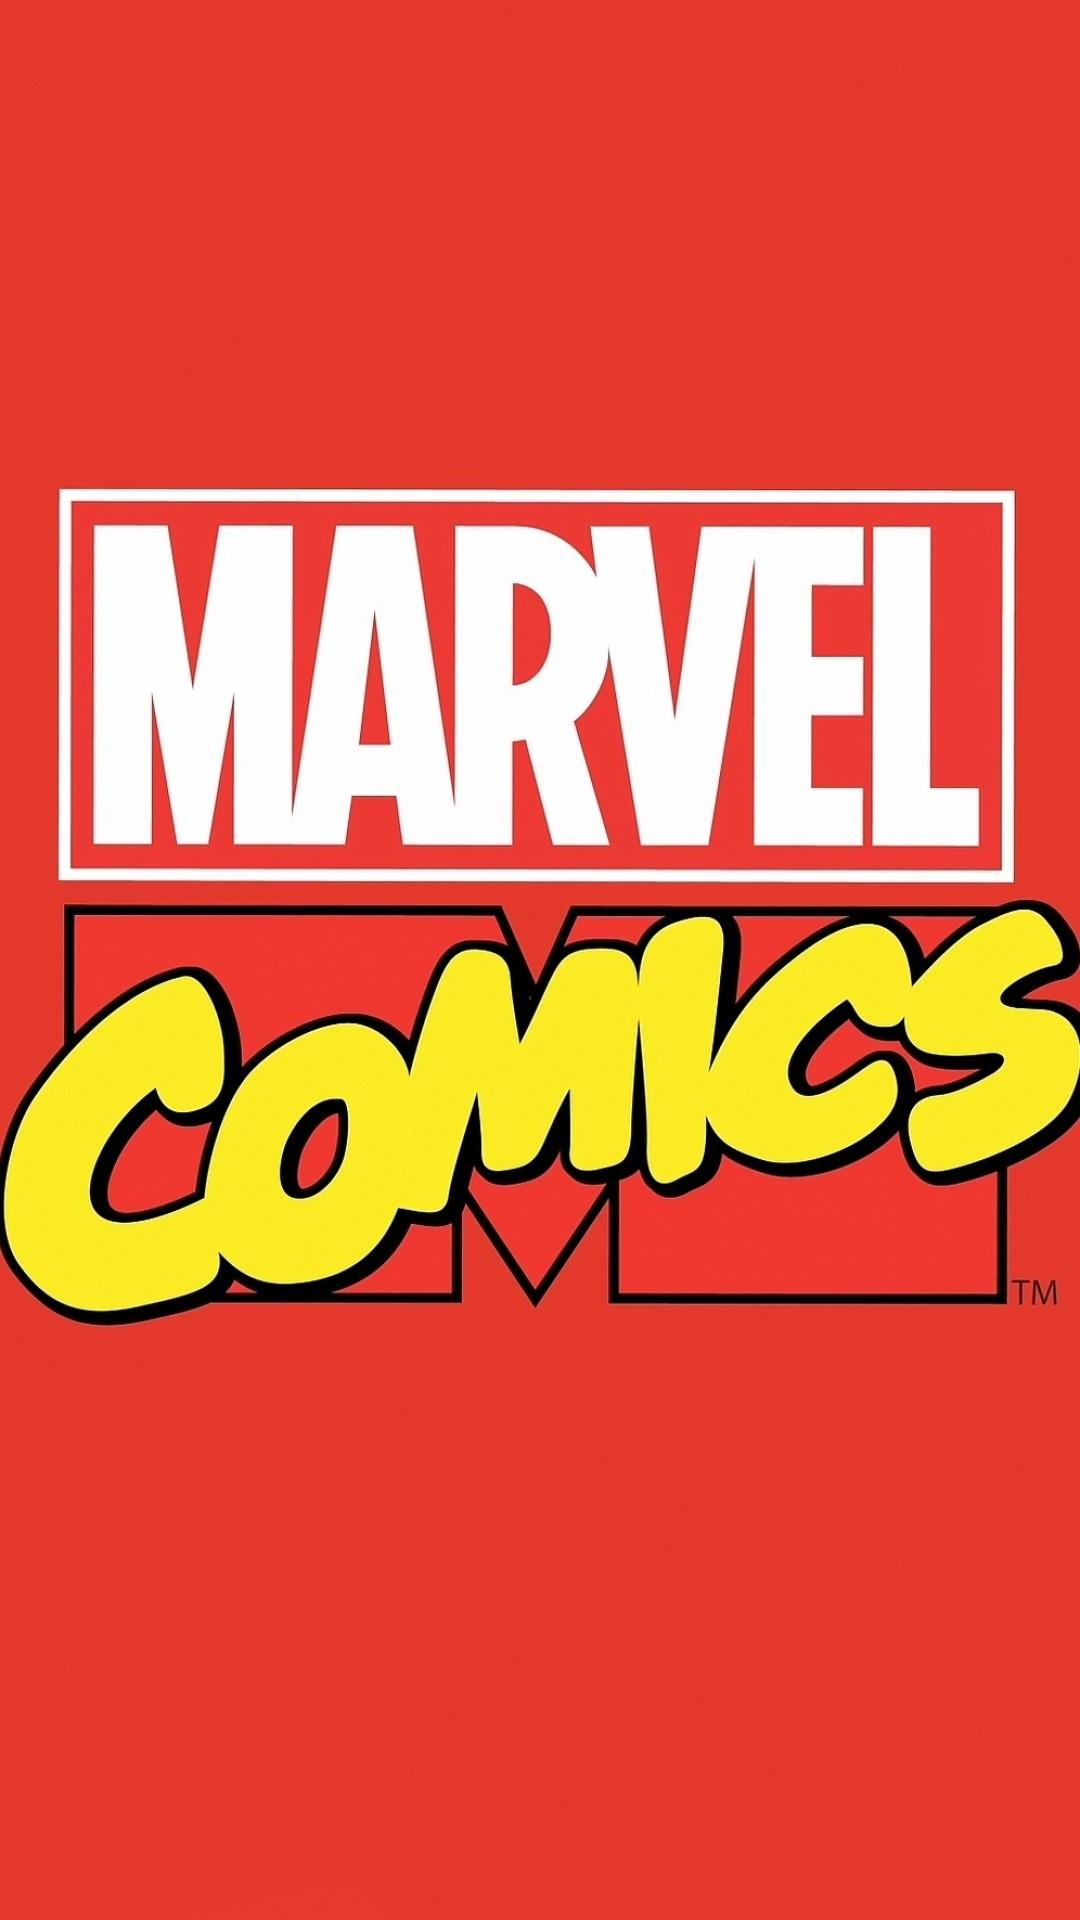 Marvel Logos Wallpapers Wallpaper Cave